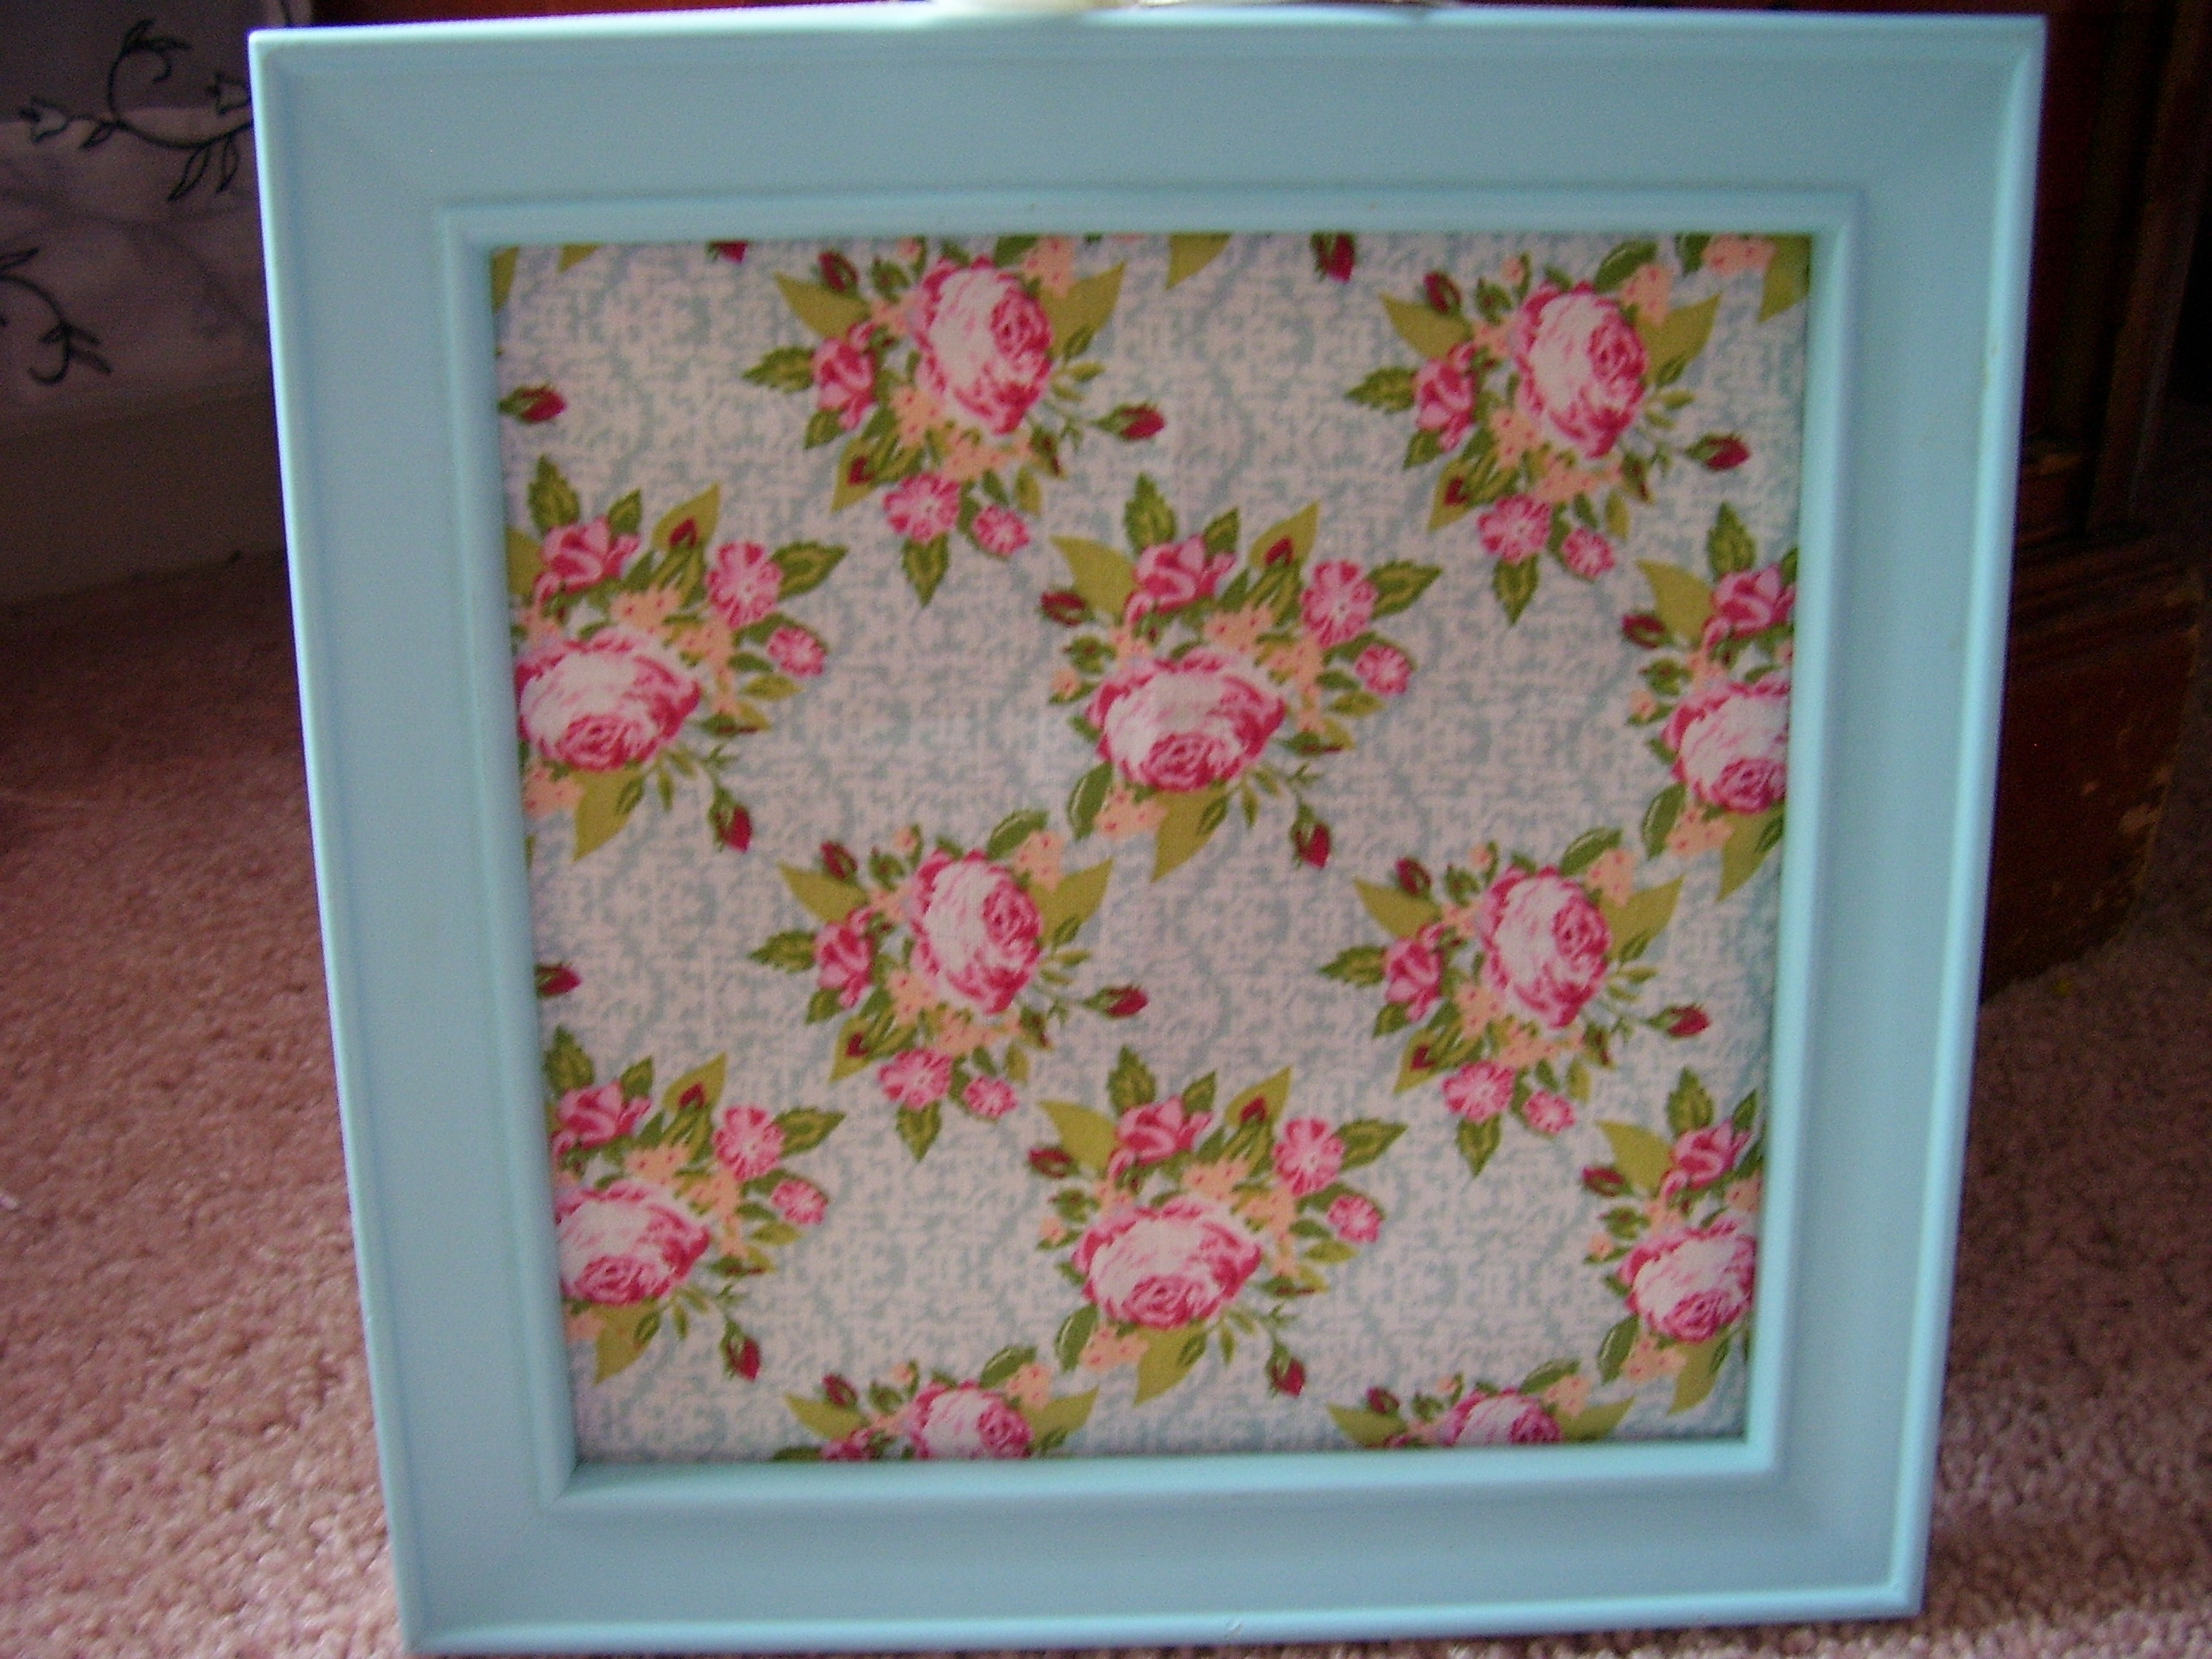 Spring & Easter Framed Fabric Wall Art – Quiver Full Of Blessings Inside Most Current Floral Fabric Wall Art (Gallery 2 of 15)